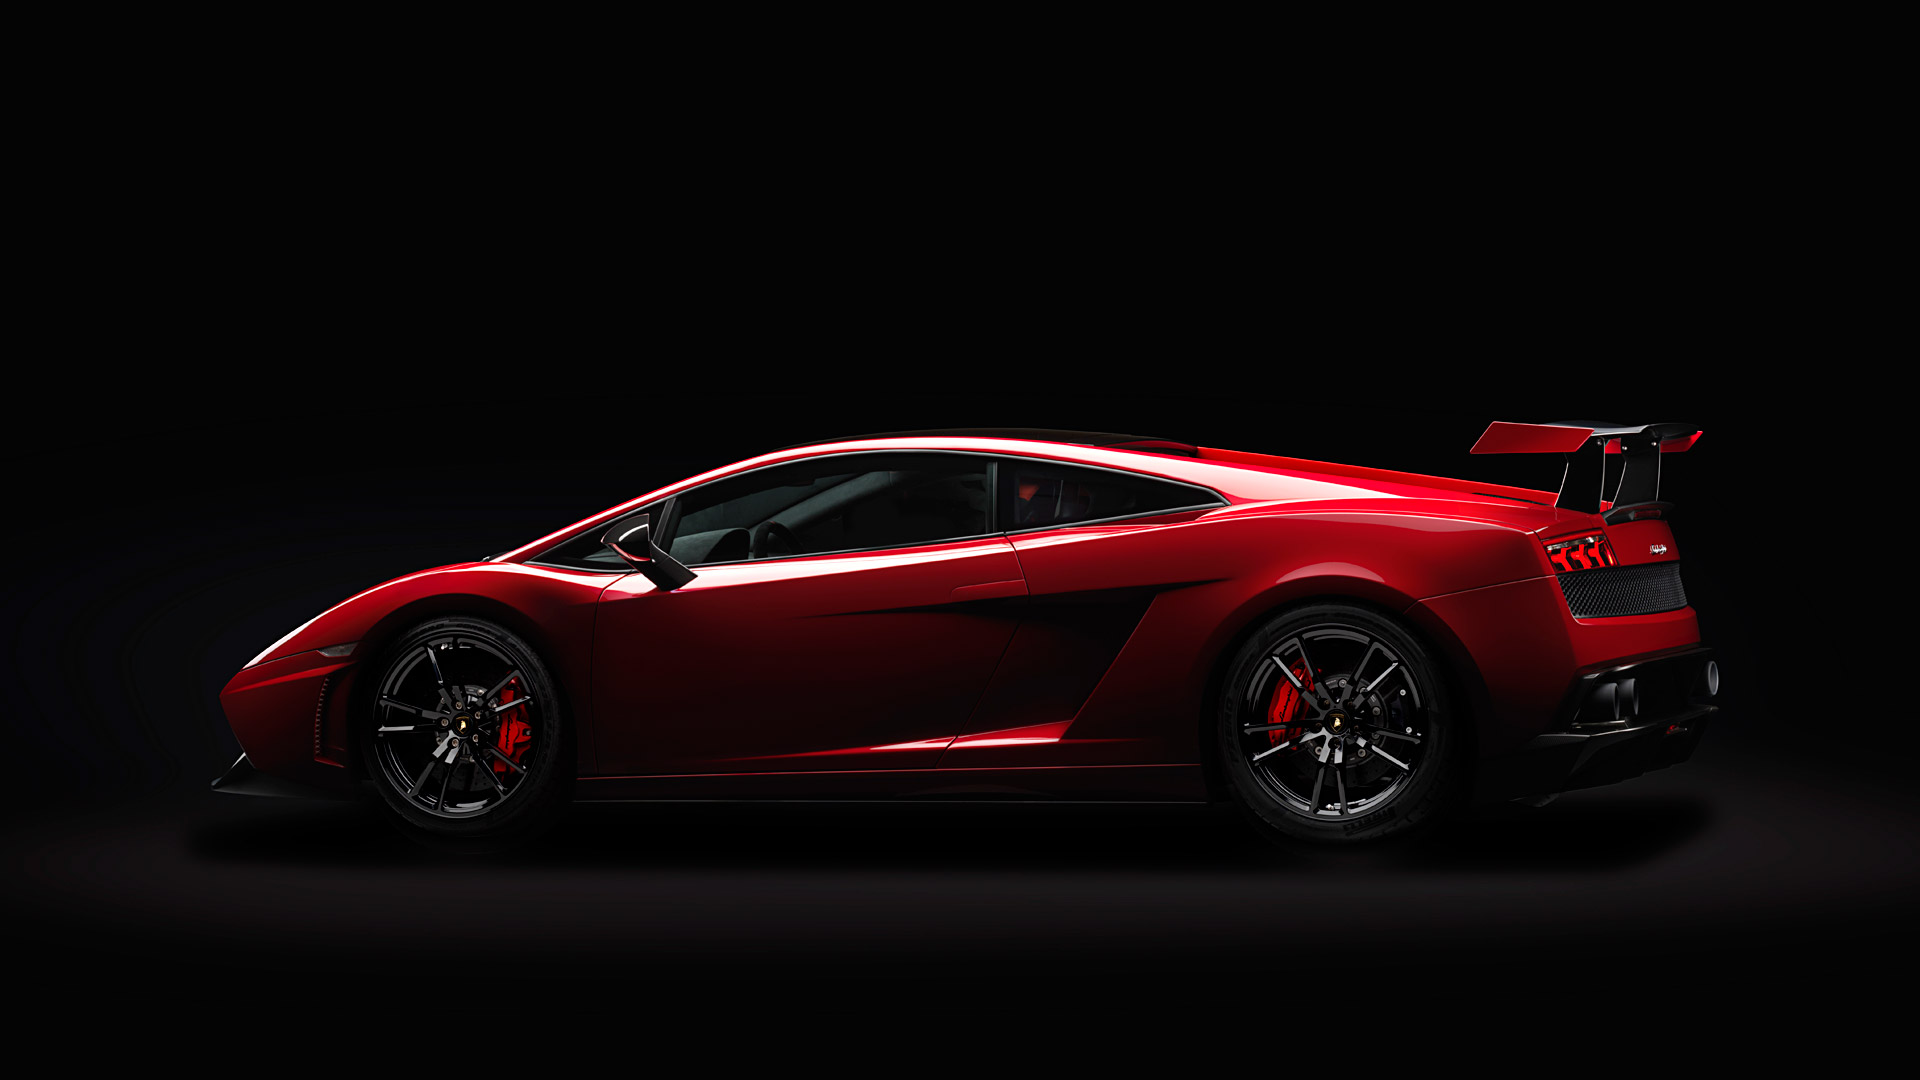 awesome red car wallpaper 32657